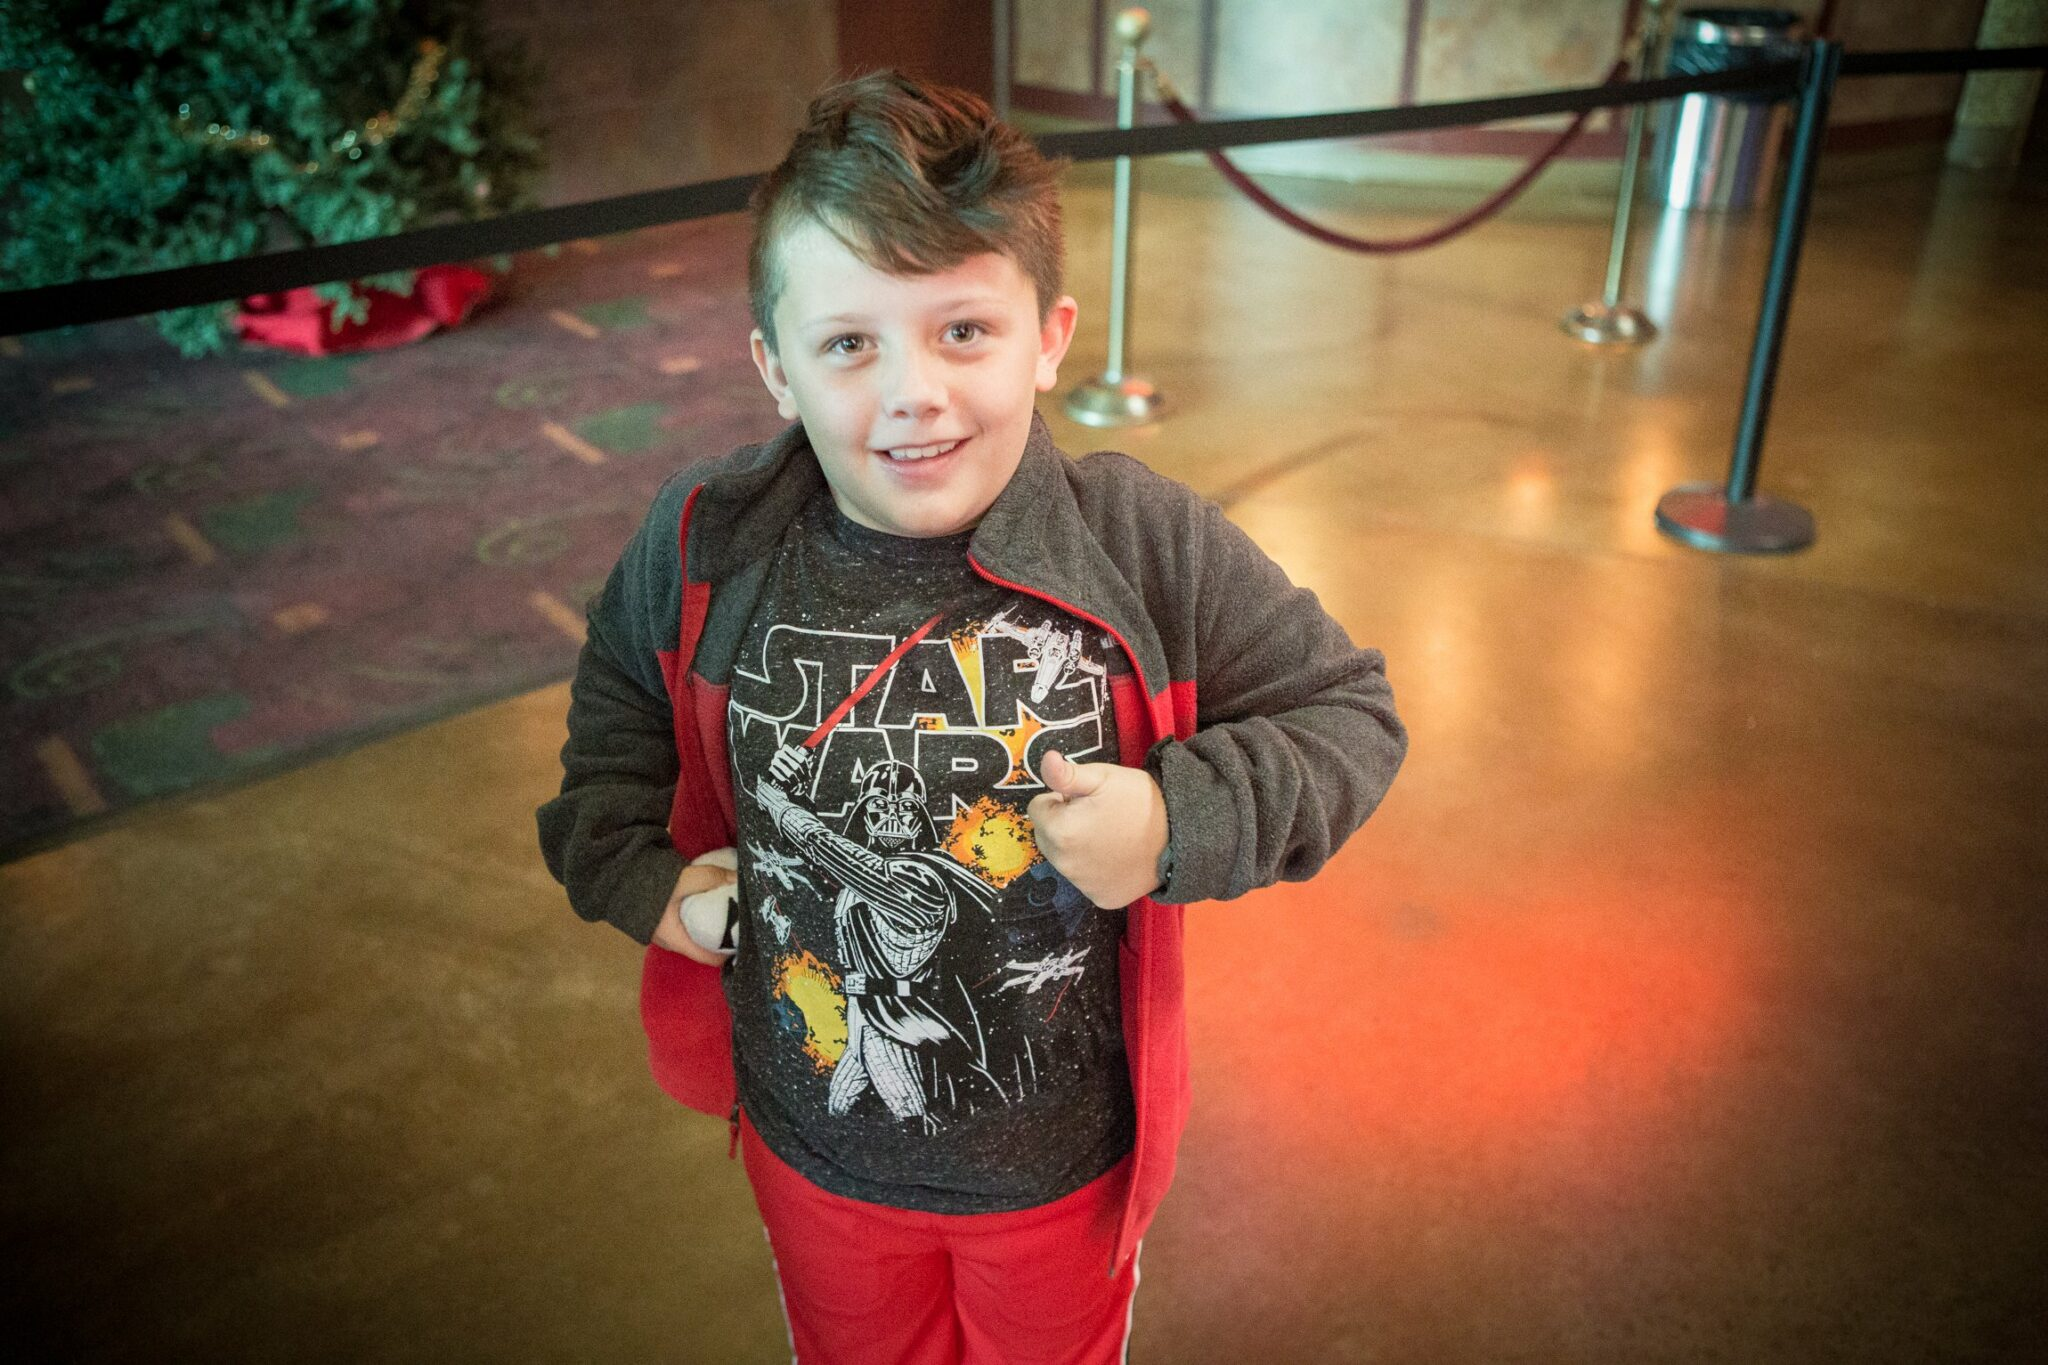 Northwest-Orthodontics-Star-Wars-2018-Star-Wars-Movie-Day-Fayetteville-Arkansas-6-of-38